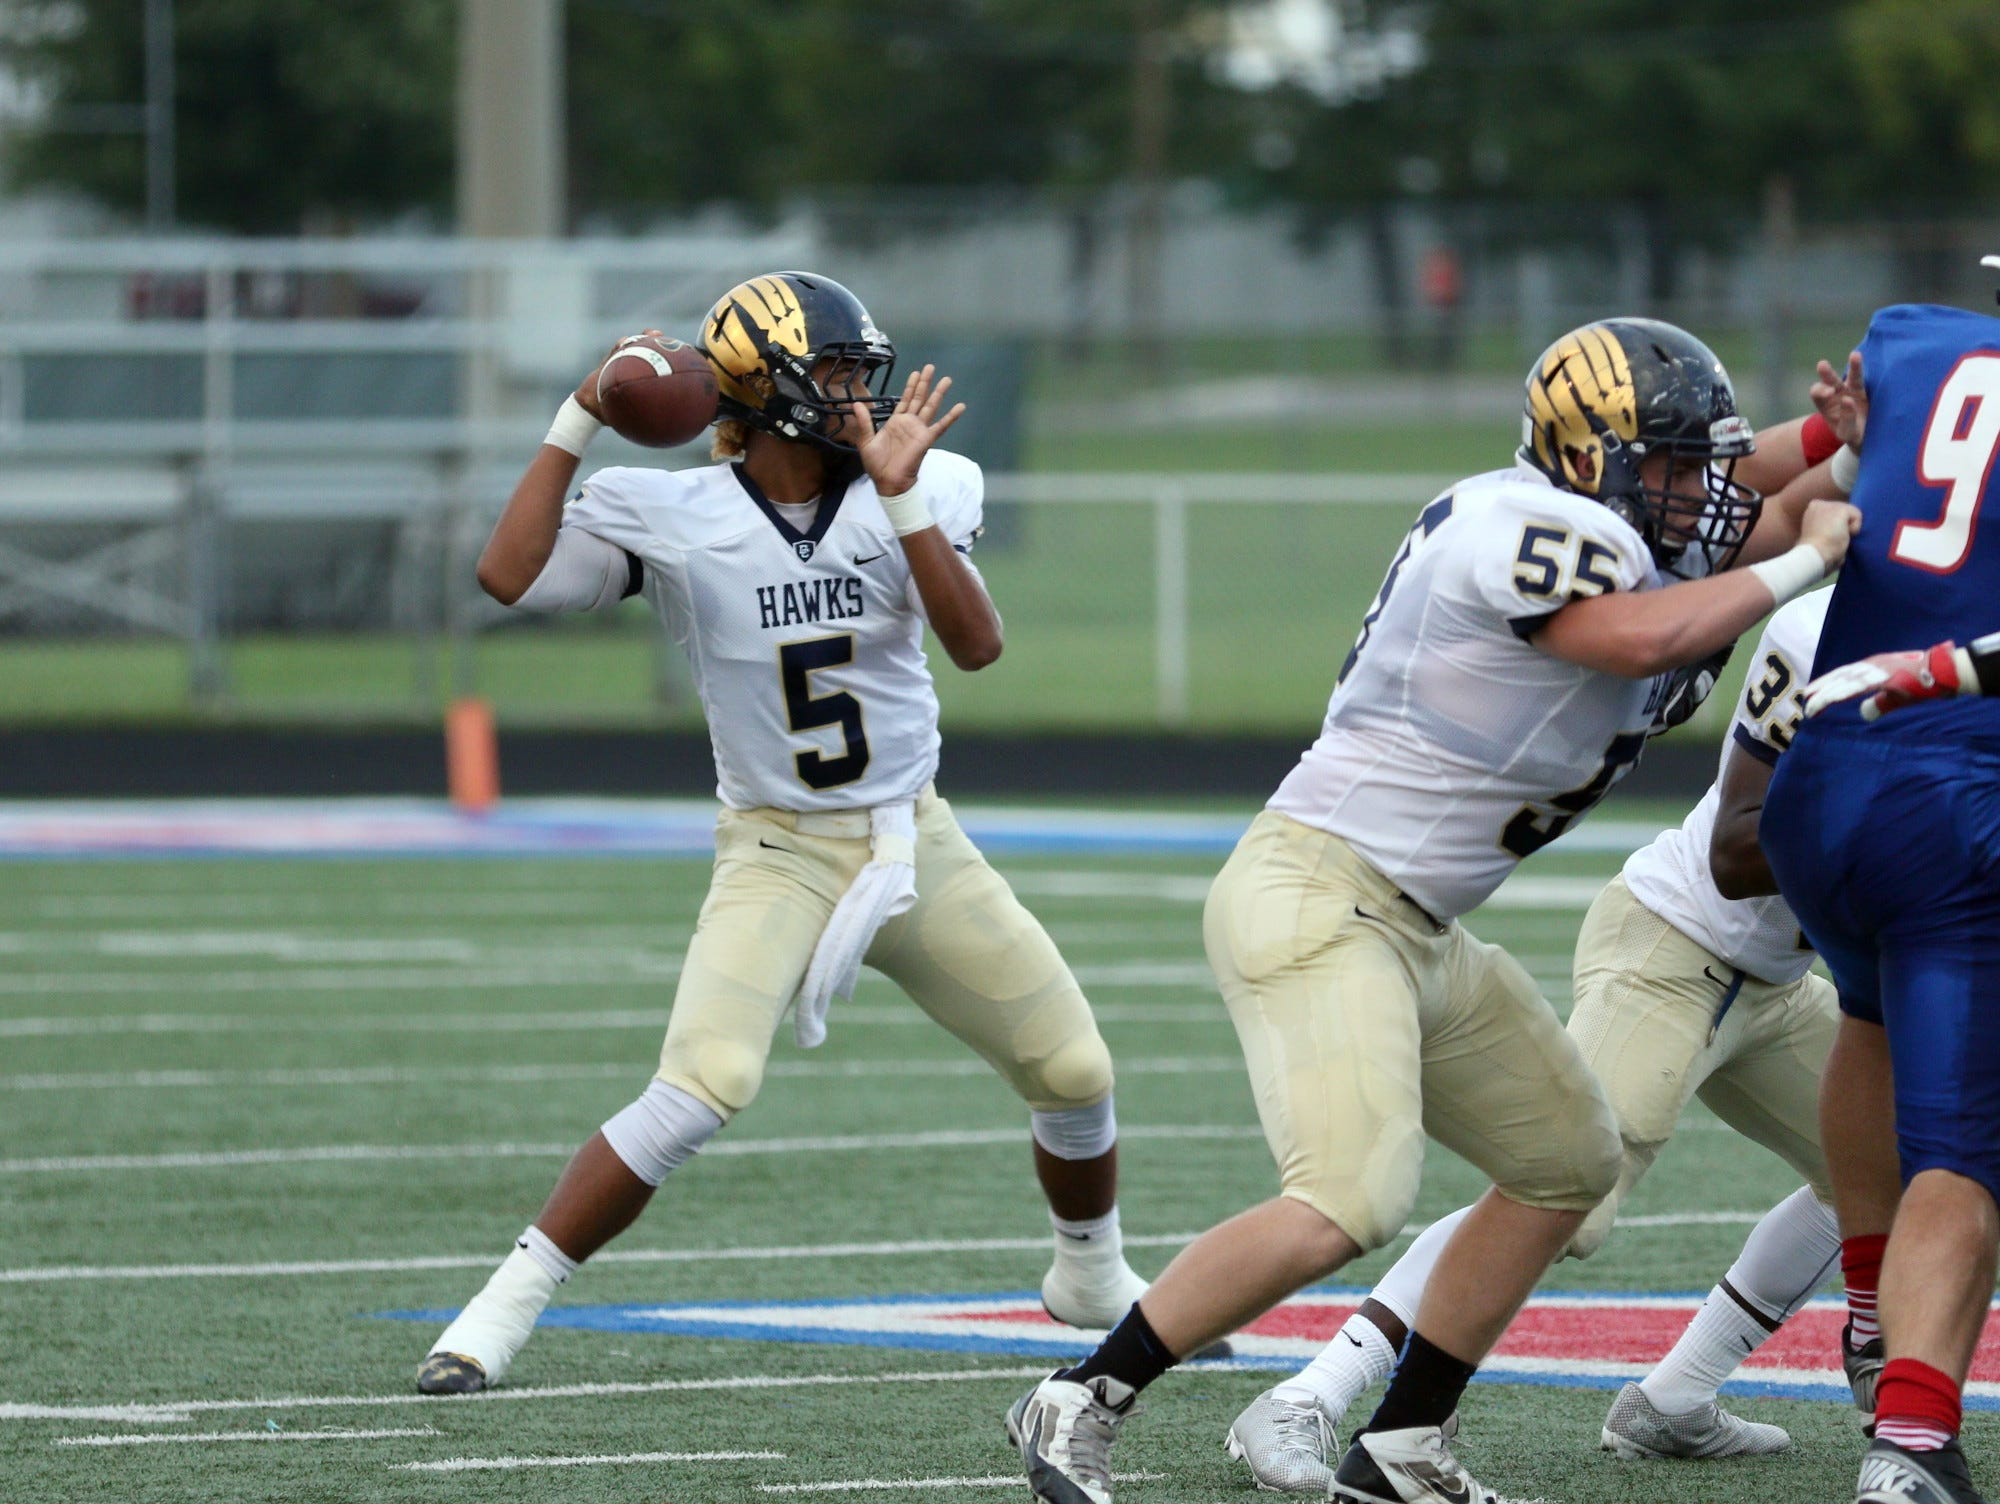 Decatur Central quarterback Bryce Jefferson totaled five touchdowns in the Hawks' win Friday night.